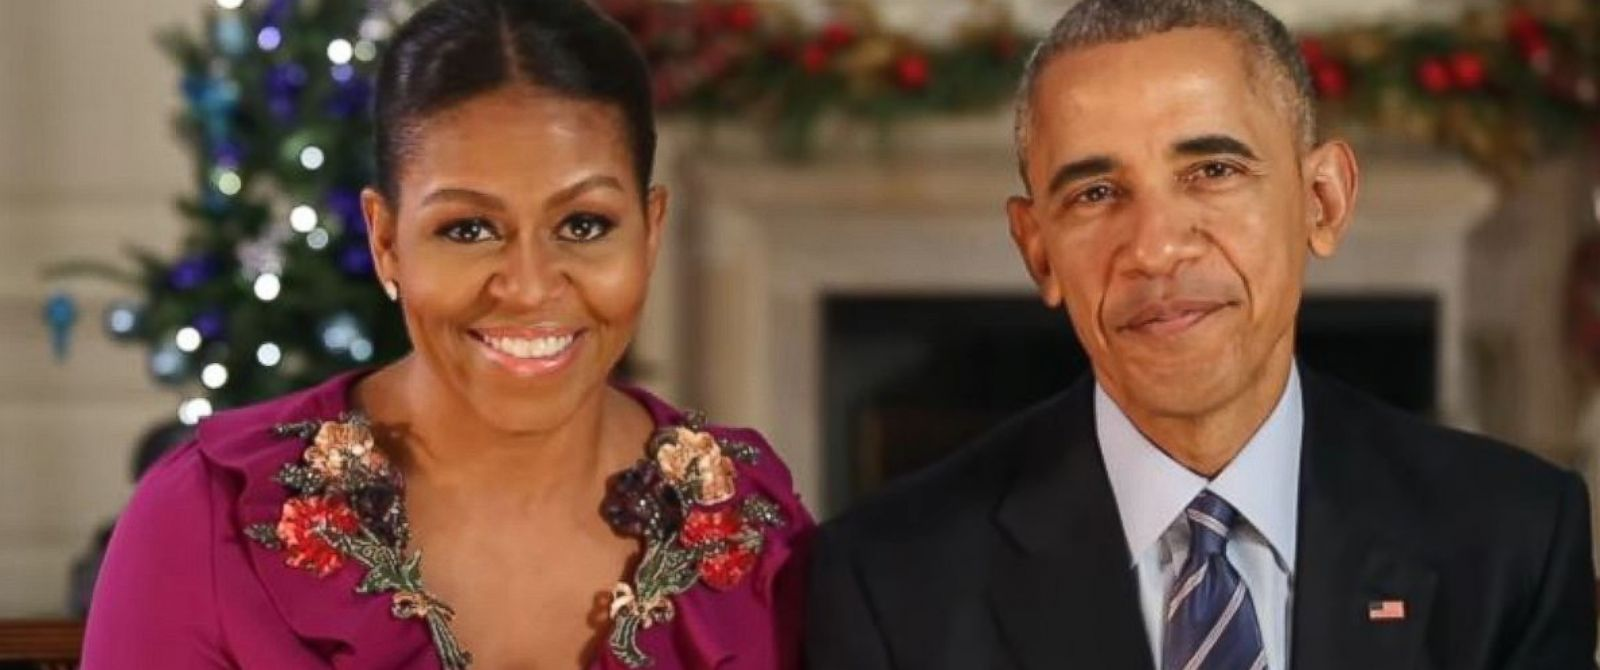 Happy Holidays! From the Two Obamas - Globalo